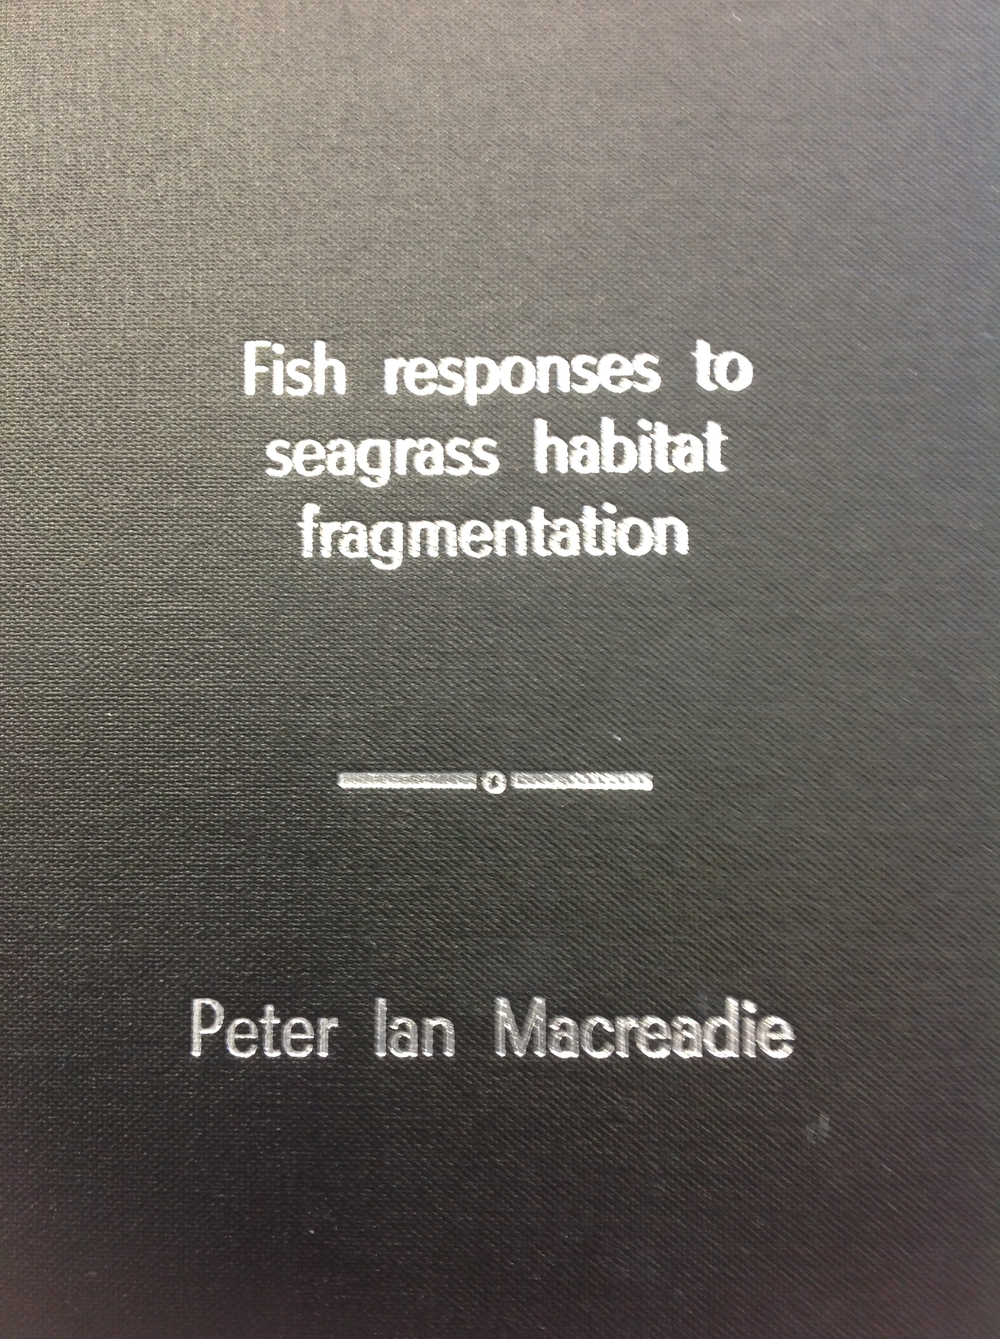 Pete Macreadie's dissertation